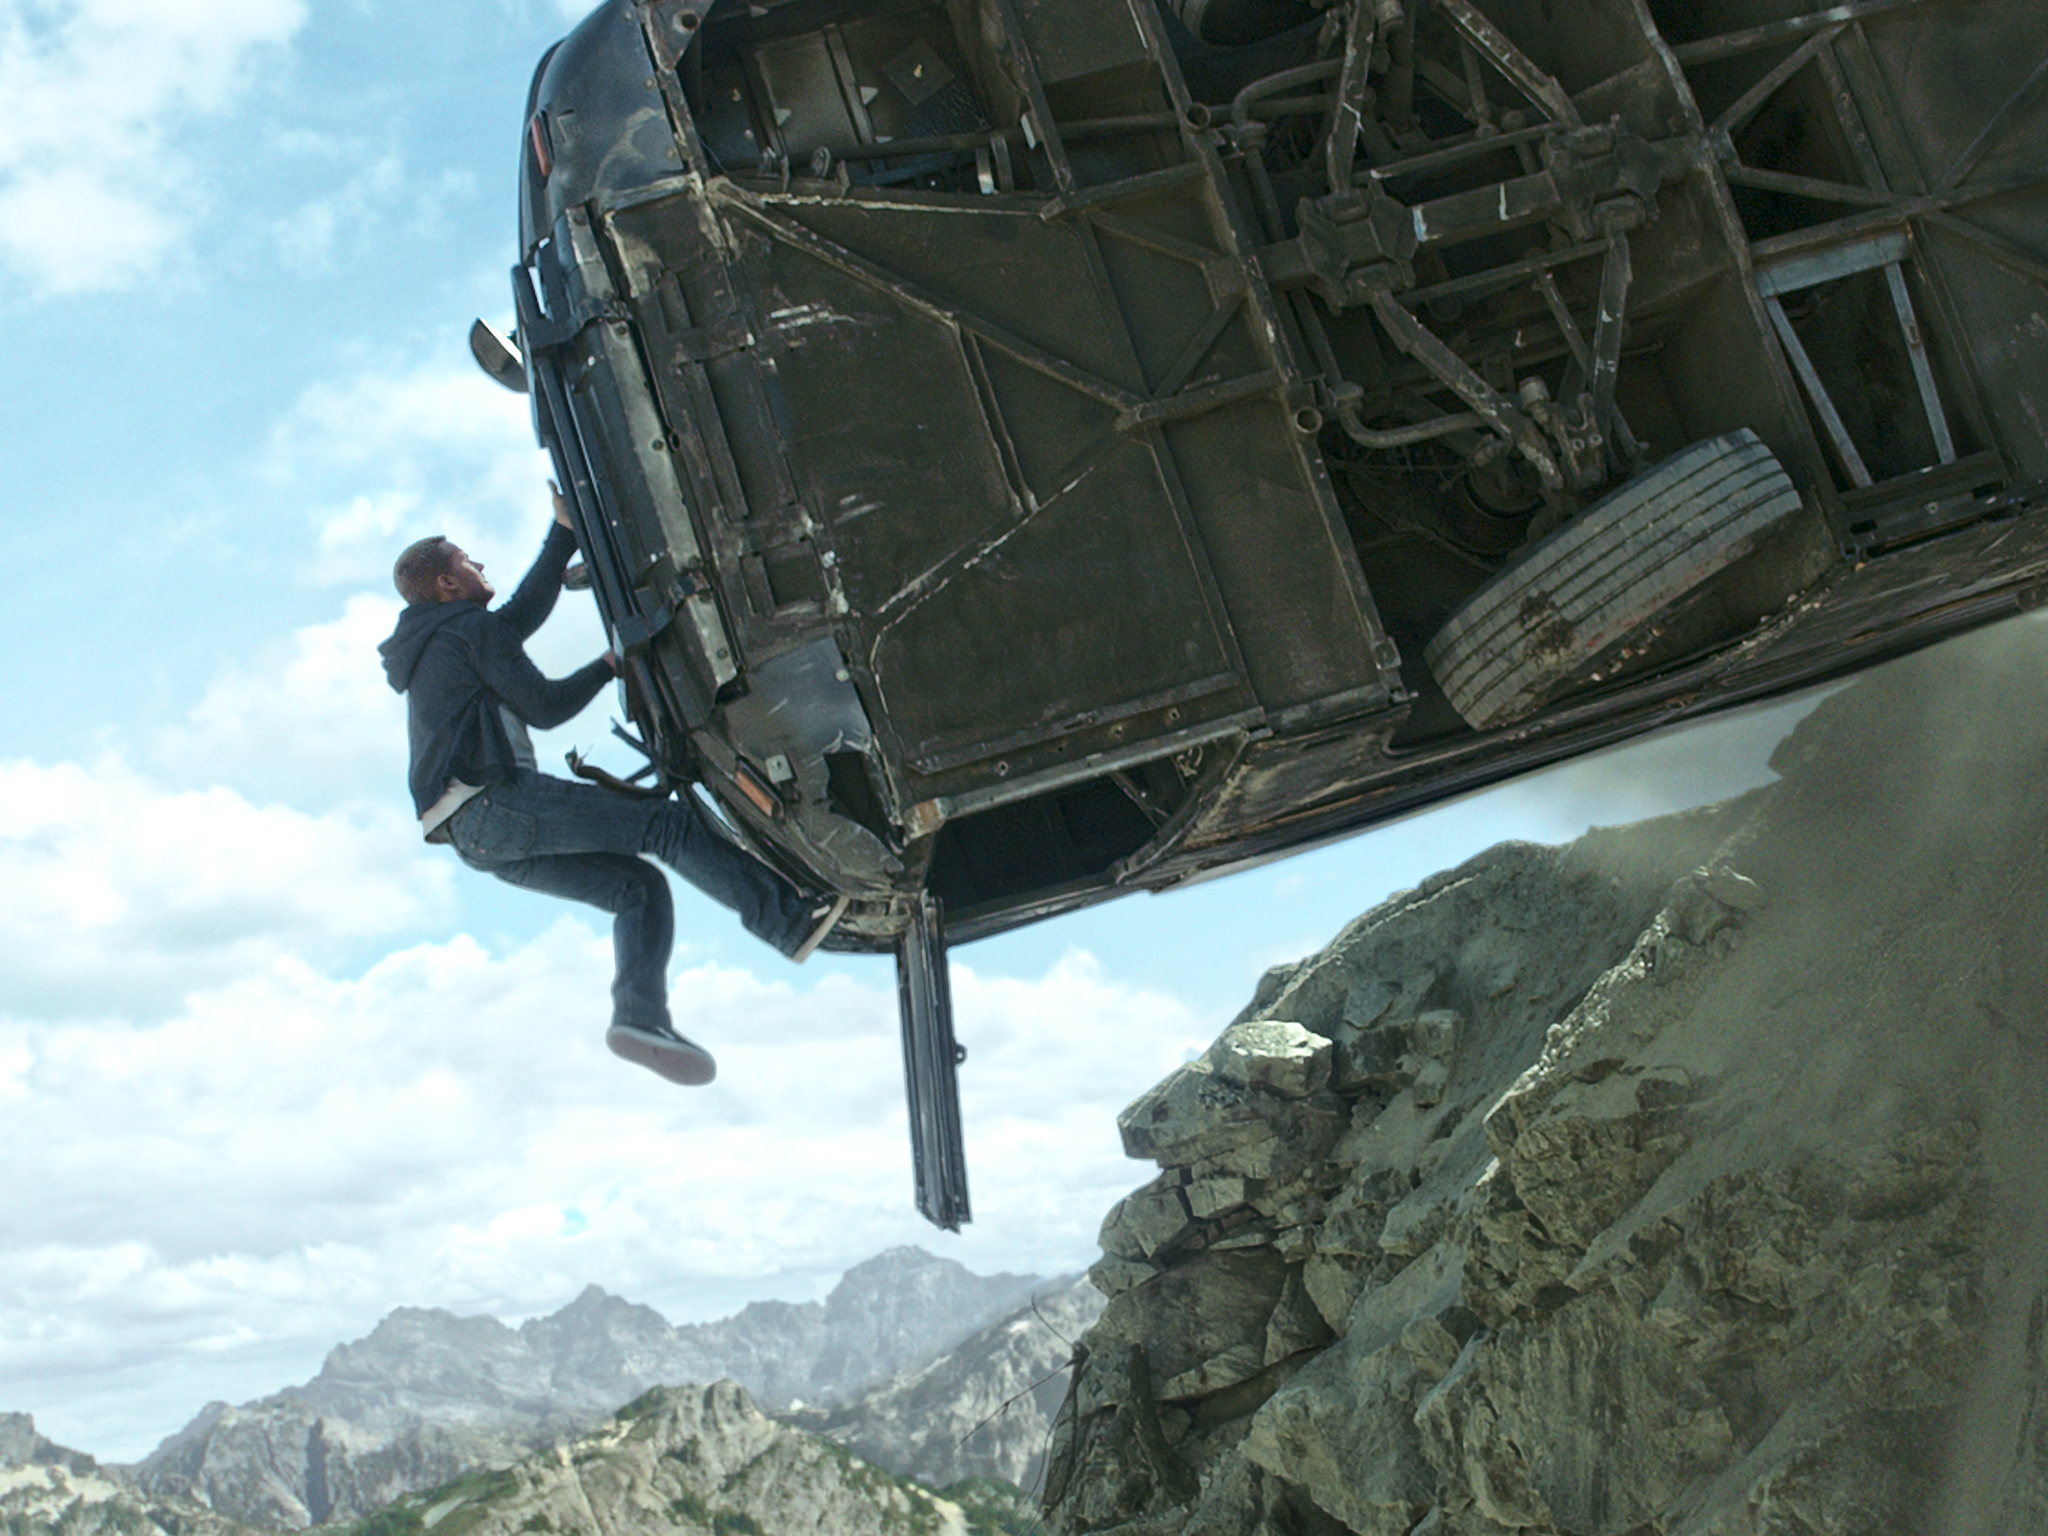 The bus stunt in 'Fast & Furious 7' (2015)